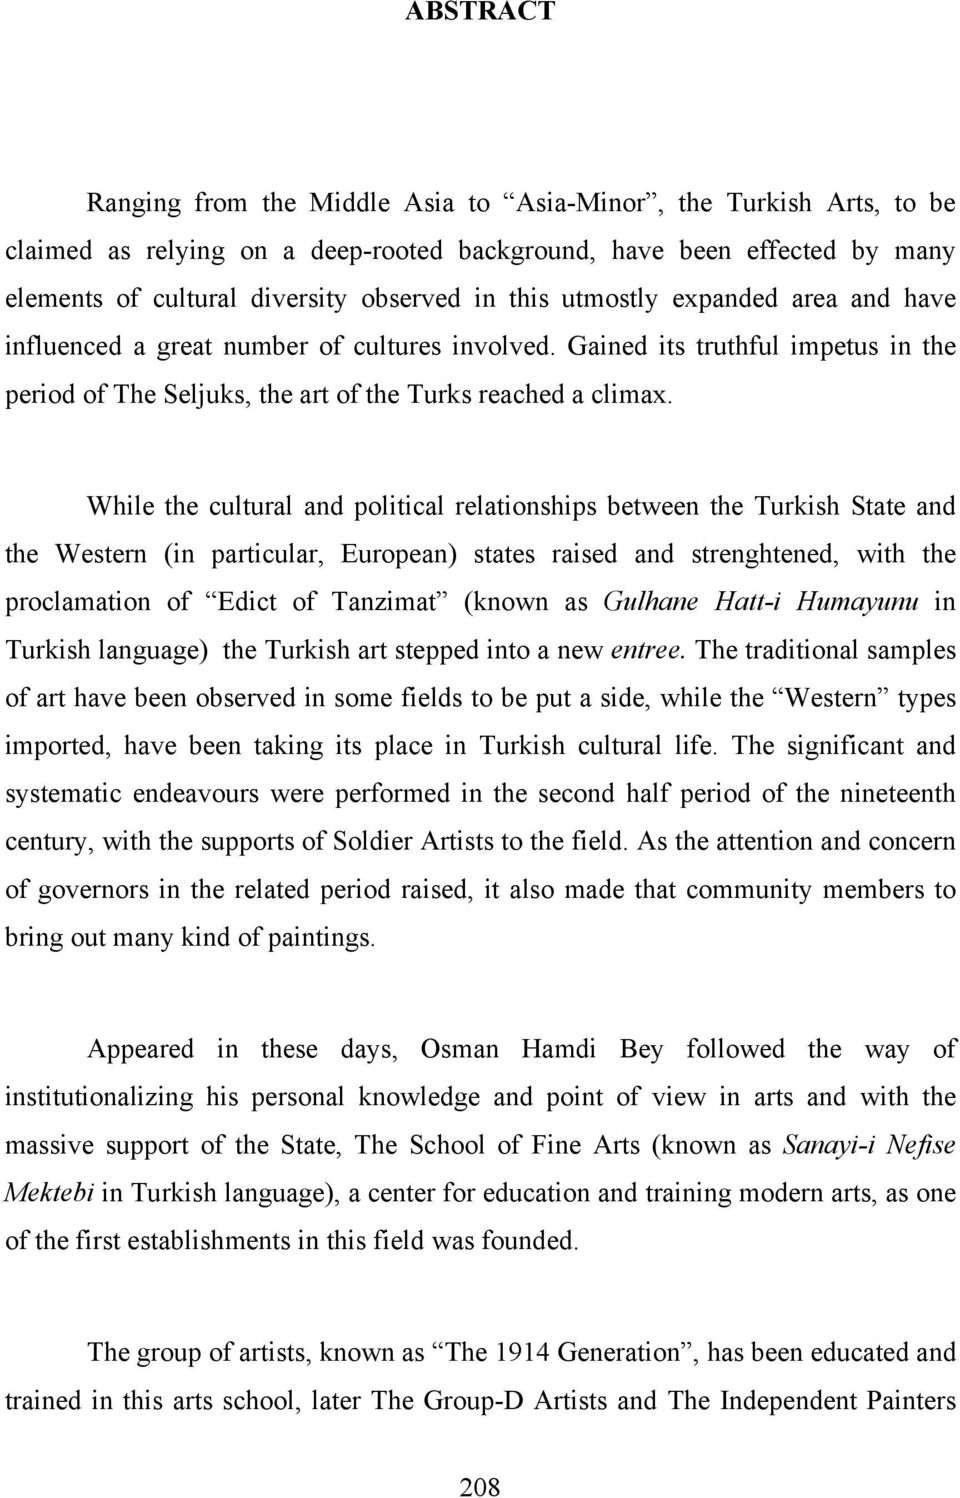 While the cultural and political relationships between the Turkish State and the Western (in particular, European) states raised and strenghtened, with the proclamation of Edict of Tanzimat (known as